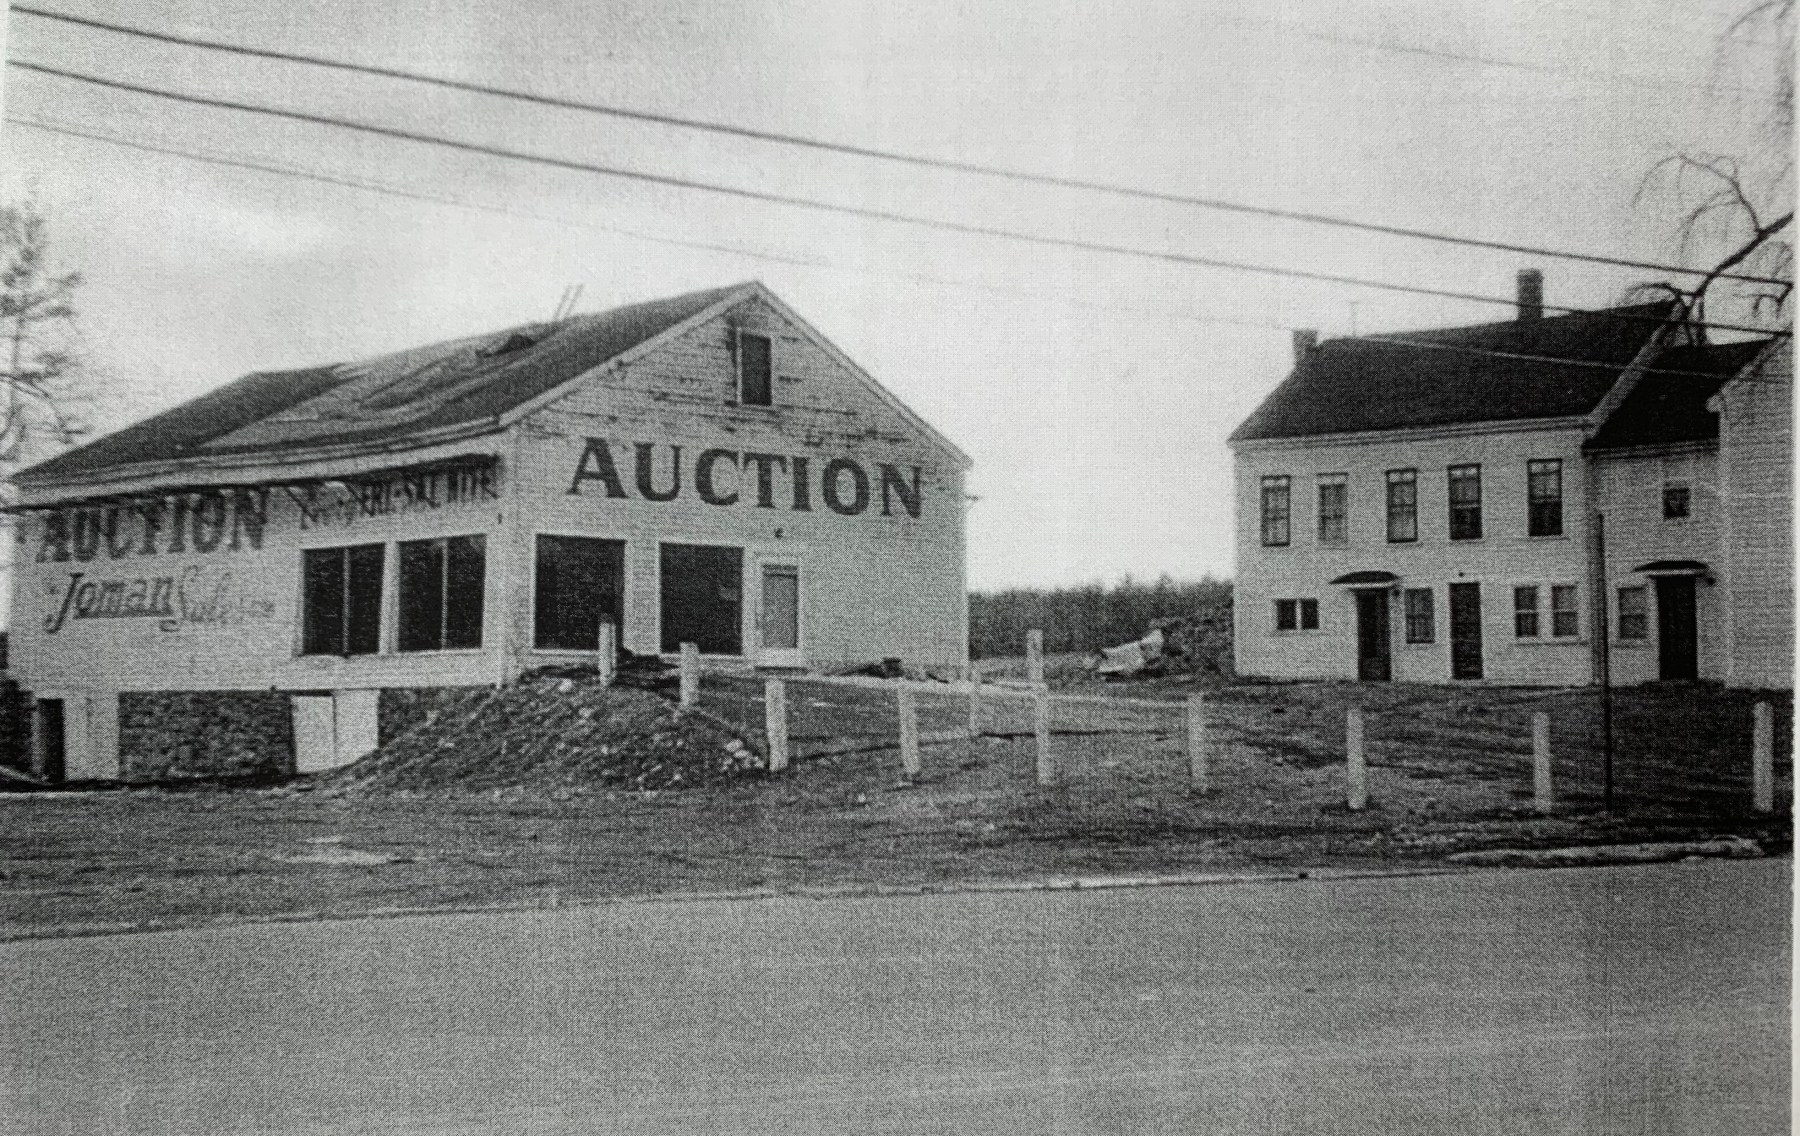 Joman Auction barn and Sulujian Farm, c. 1950, Burlington MA